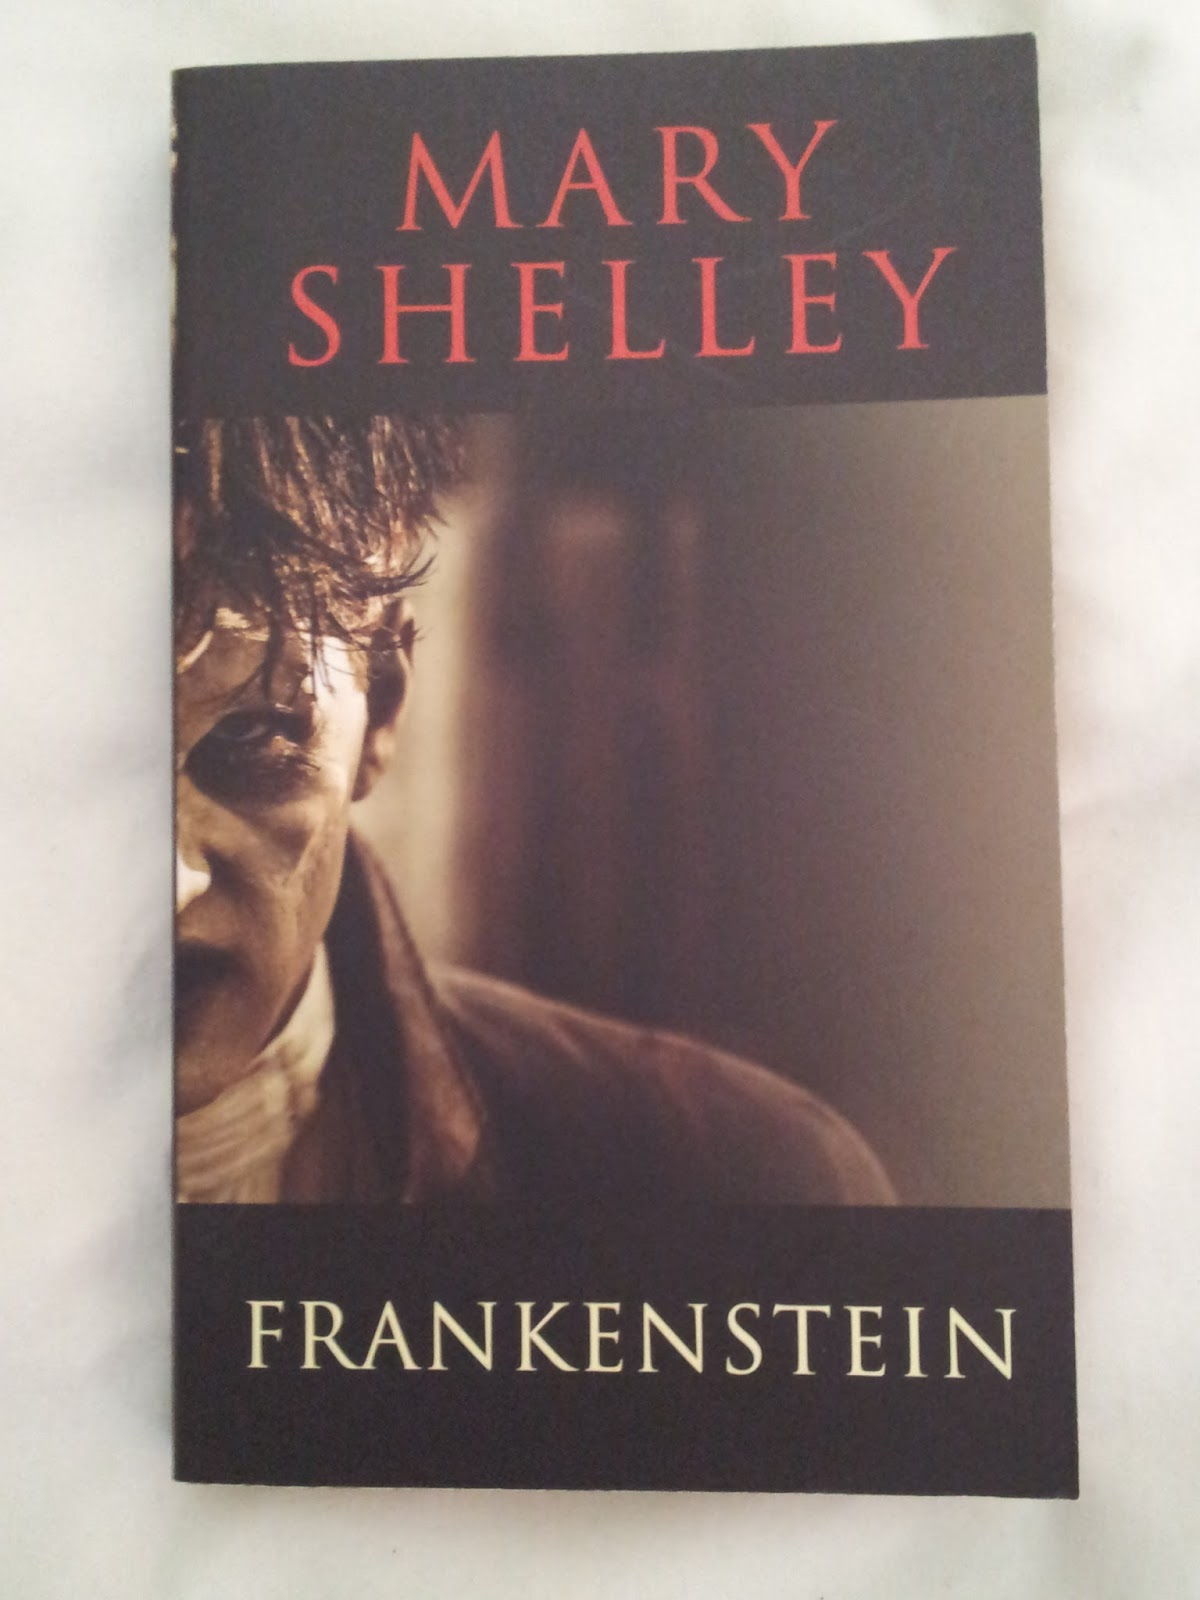 thesis statement about victor frankenstein In mary shelley's frankenstein, victor frankenstein is the true monster, at least according to the monster frankenstein thesis statements.